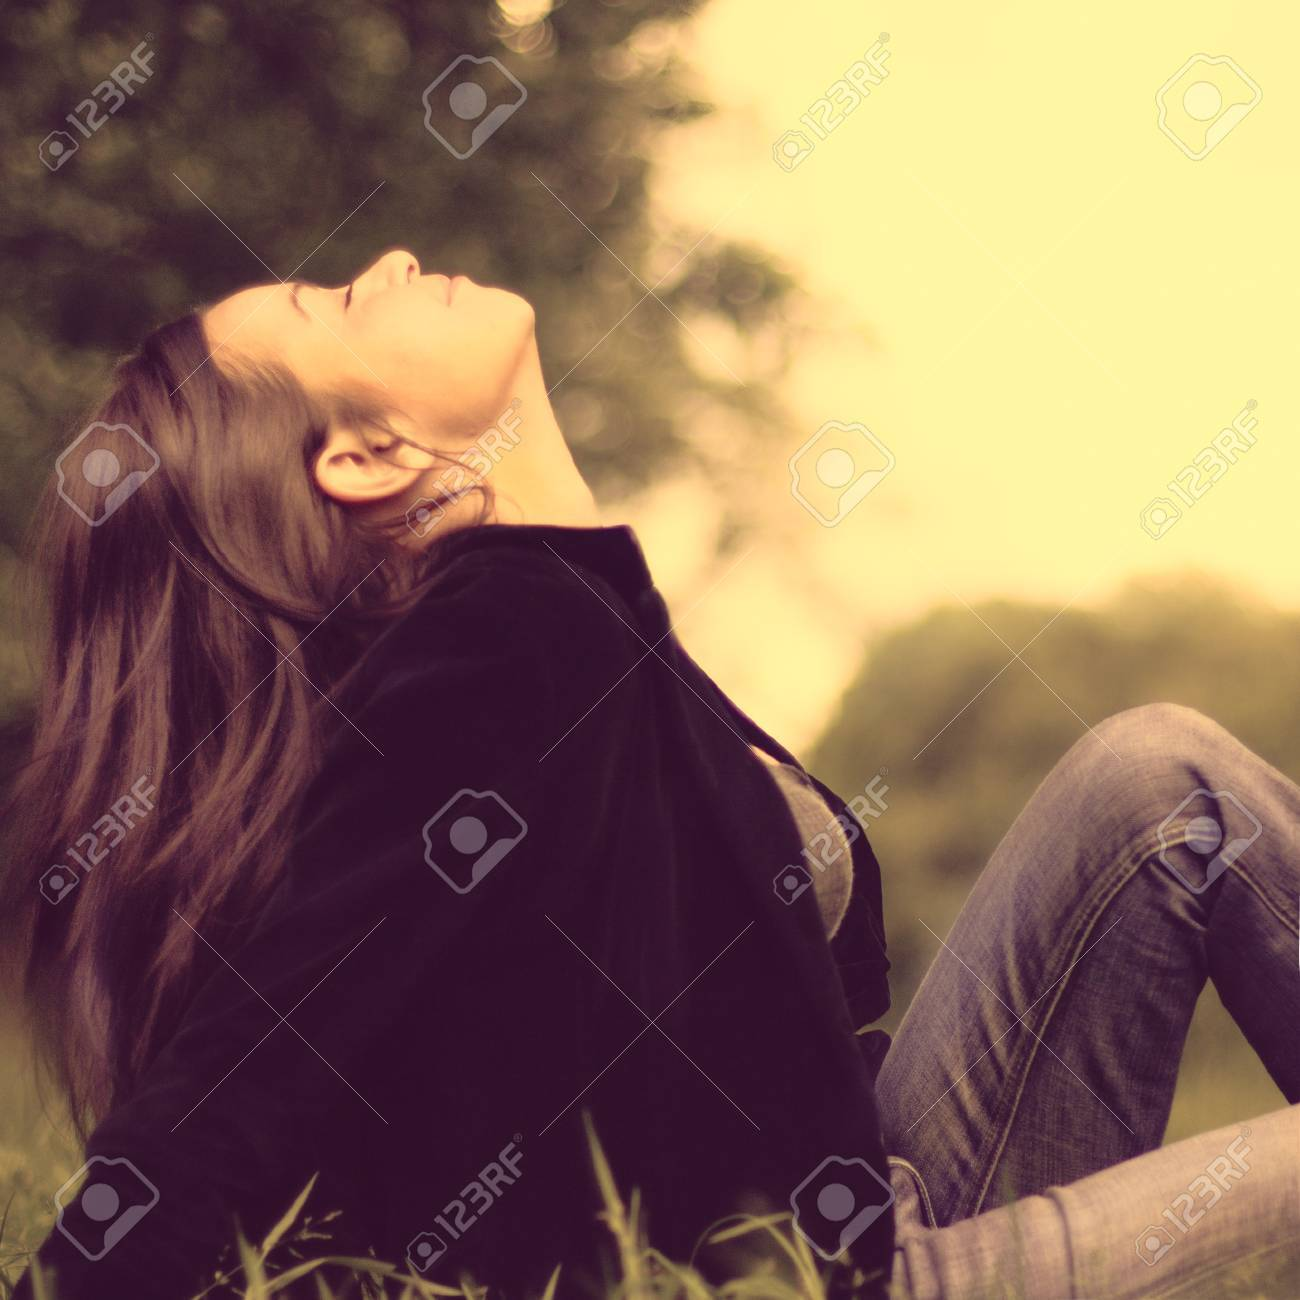 Spring Beauty Girl. Beautiful Young Woman Lying on Green Grass outdoor. Park Stock Photo - 25103024